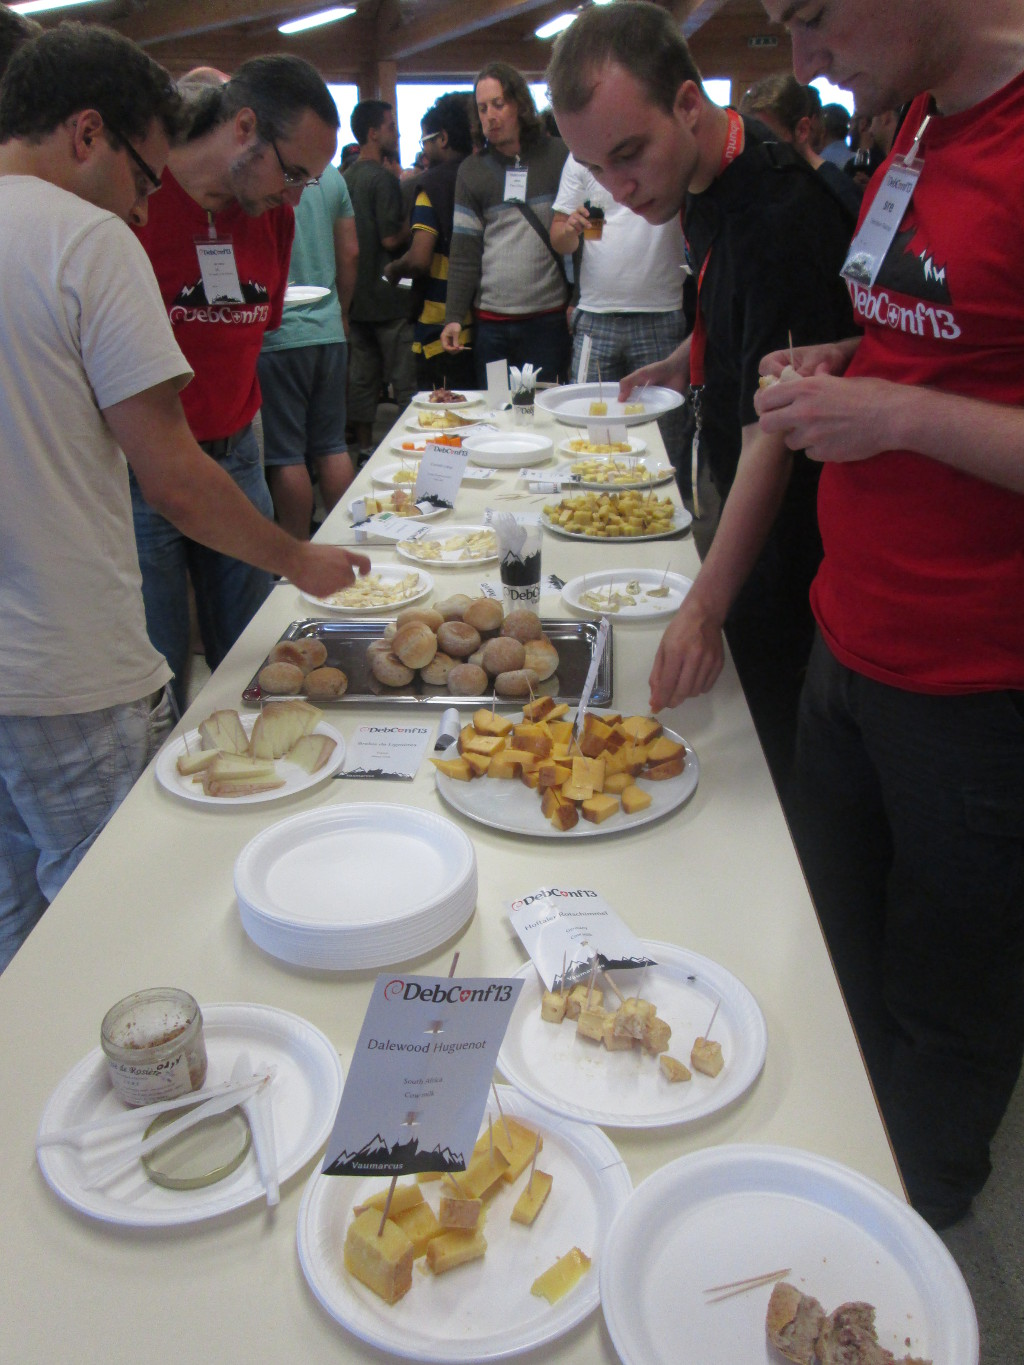 typical DebConf cheese & wine table